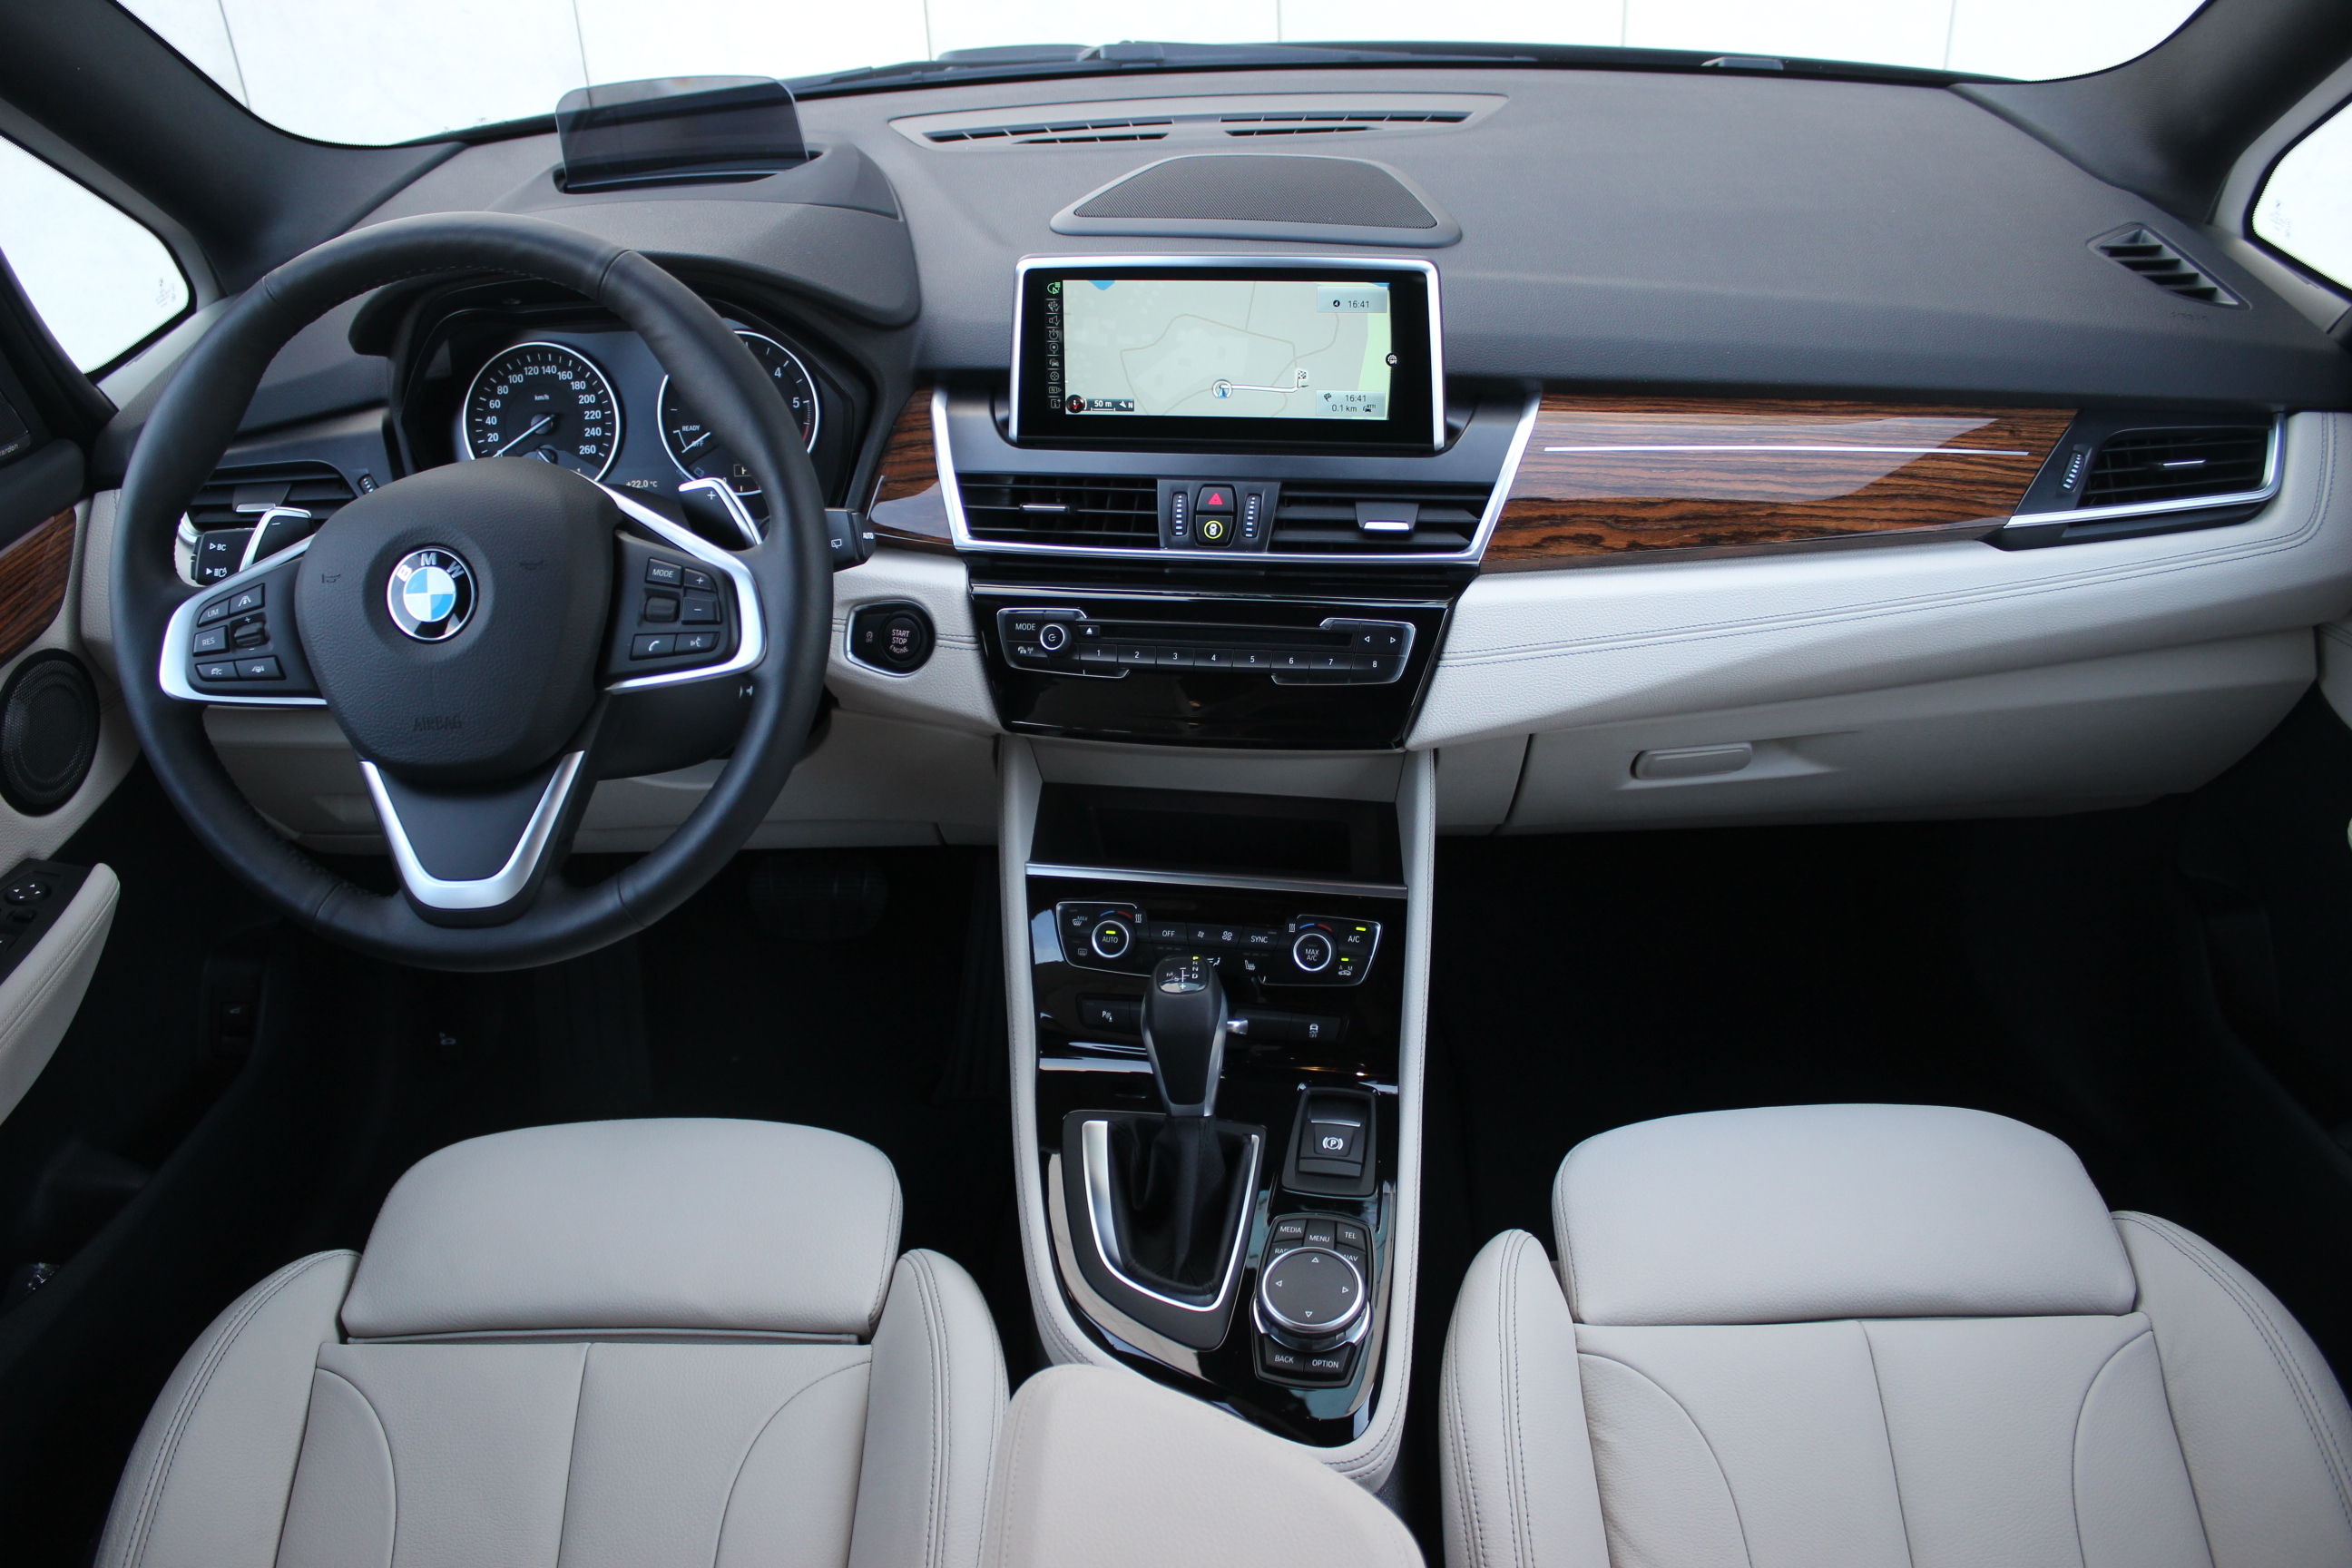 essai vid o bmw s rie 2 gran tourer sept places en premi re classe. Black Bedroom Furniture Sets. Home Design Ideas